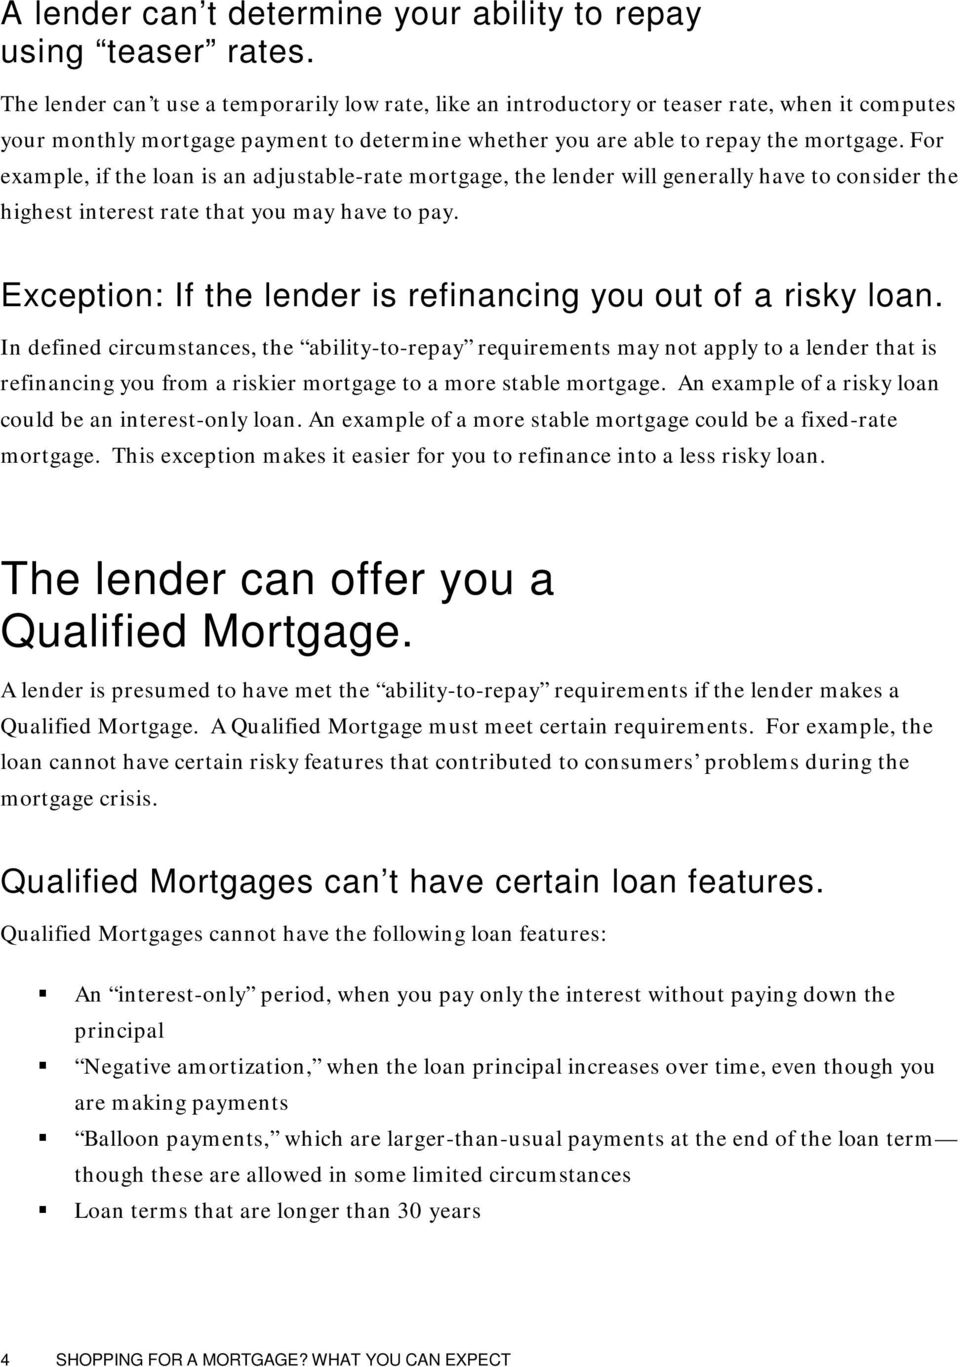 For example, if the loan is an adjustable-rate mortgage, the lender will generally have to consider the highest interest rate that you may have to pay.